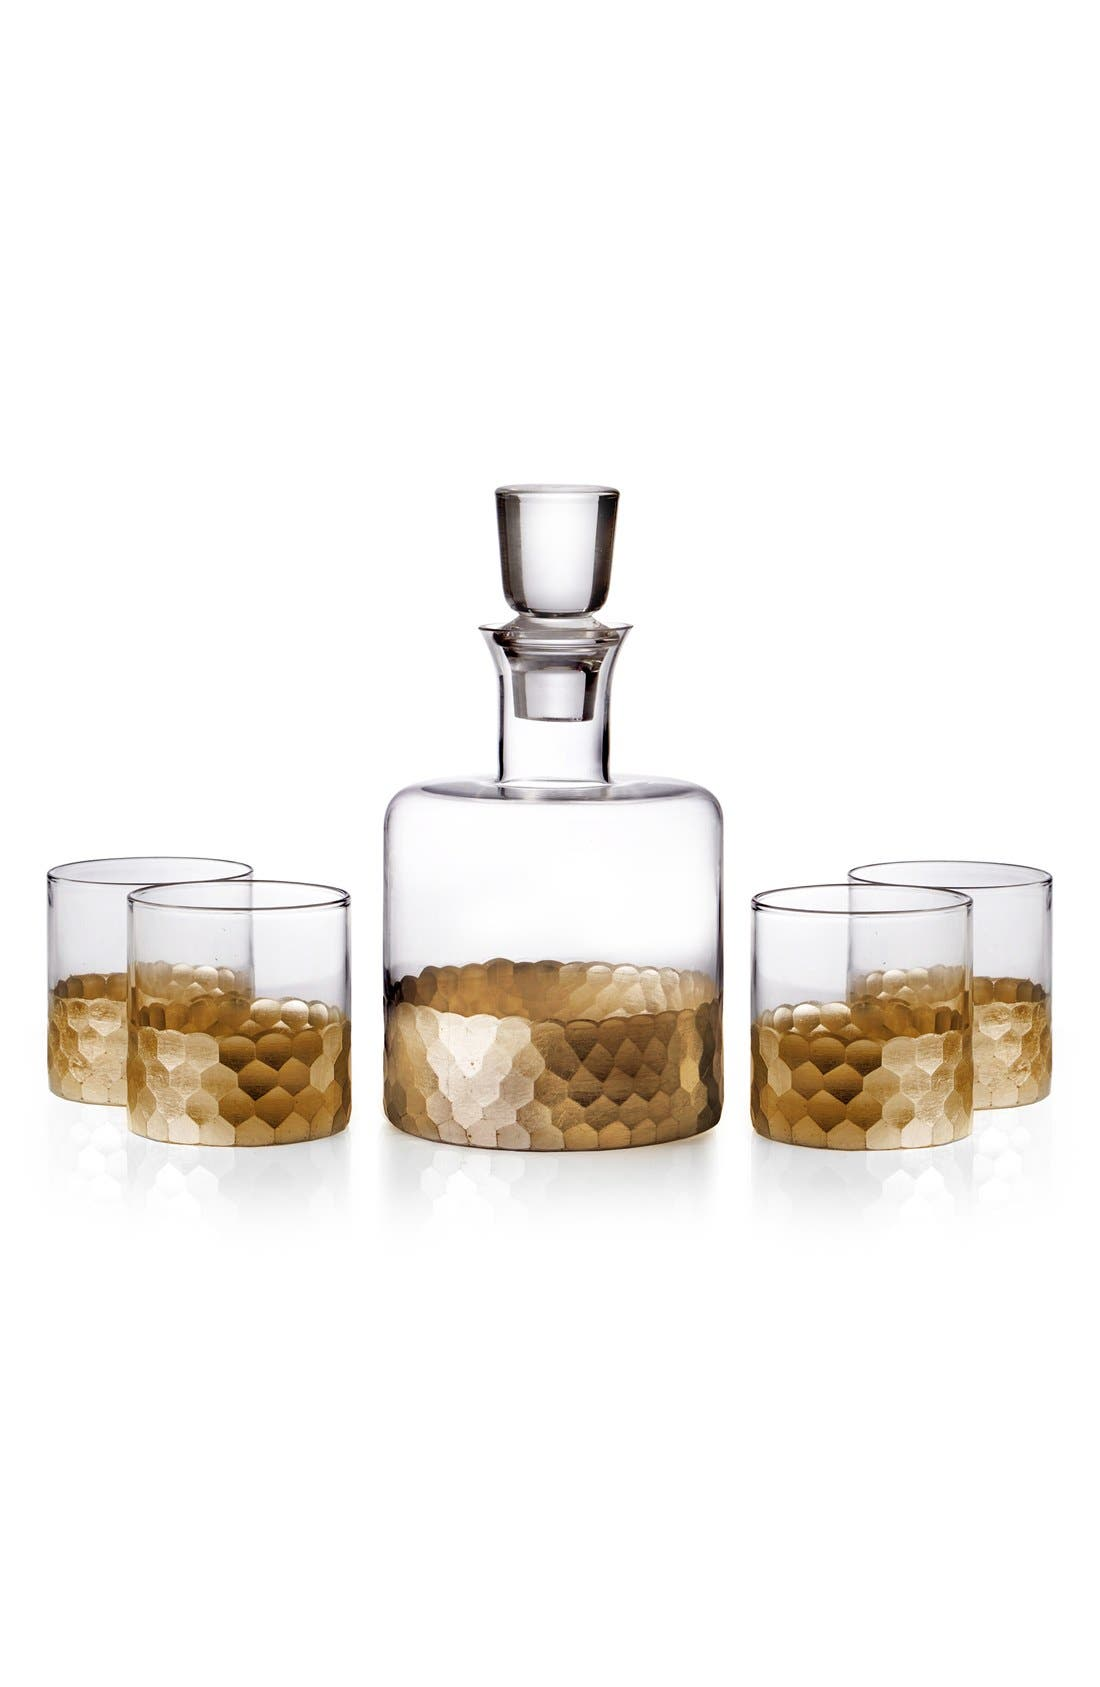 American Atelier 'Daphne' Decanter & Whiskey Glasses (Set of 5)